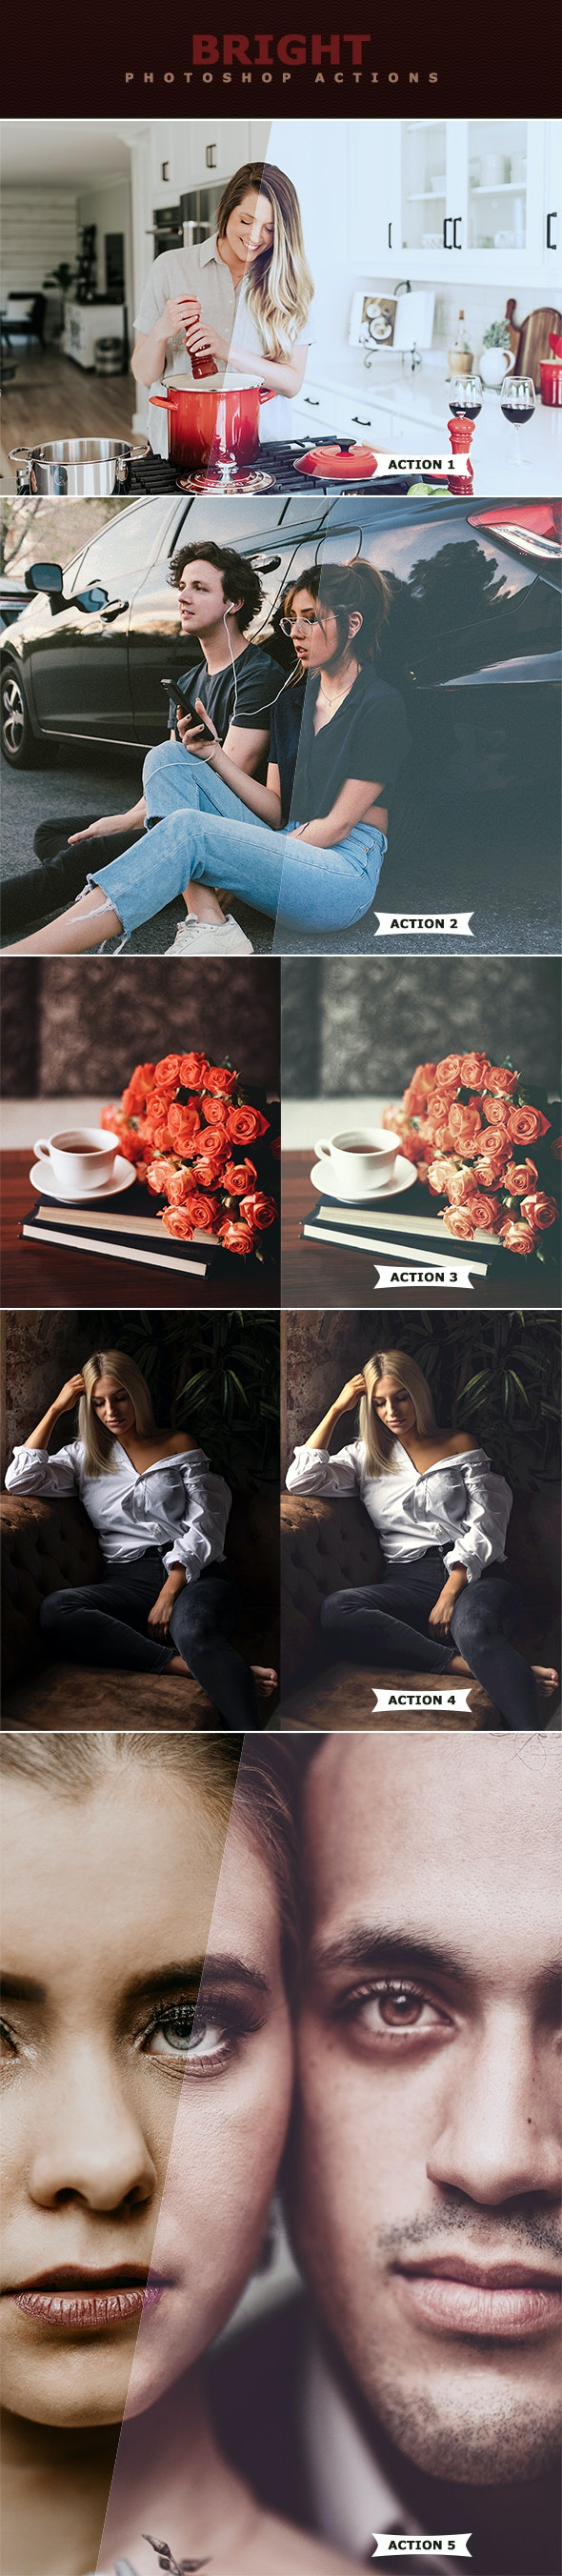 Bright Photoshop Actions - Photo Effects Actions